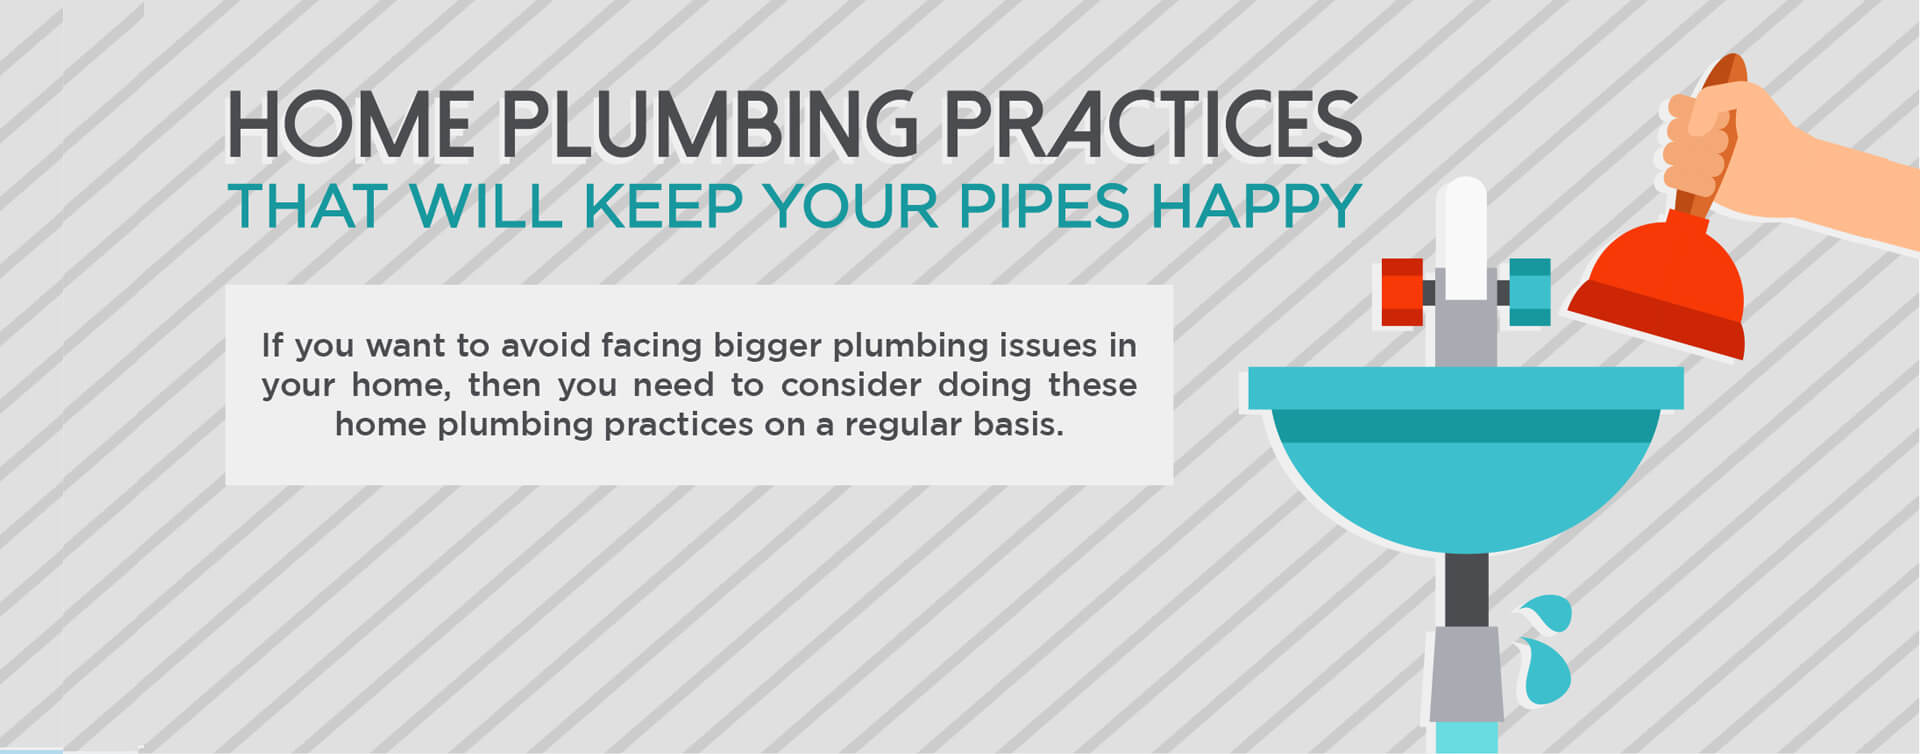 home plumbing practices that will keep your pipes happy banner